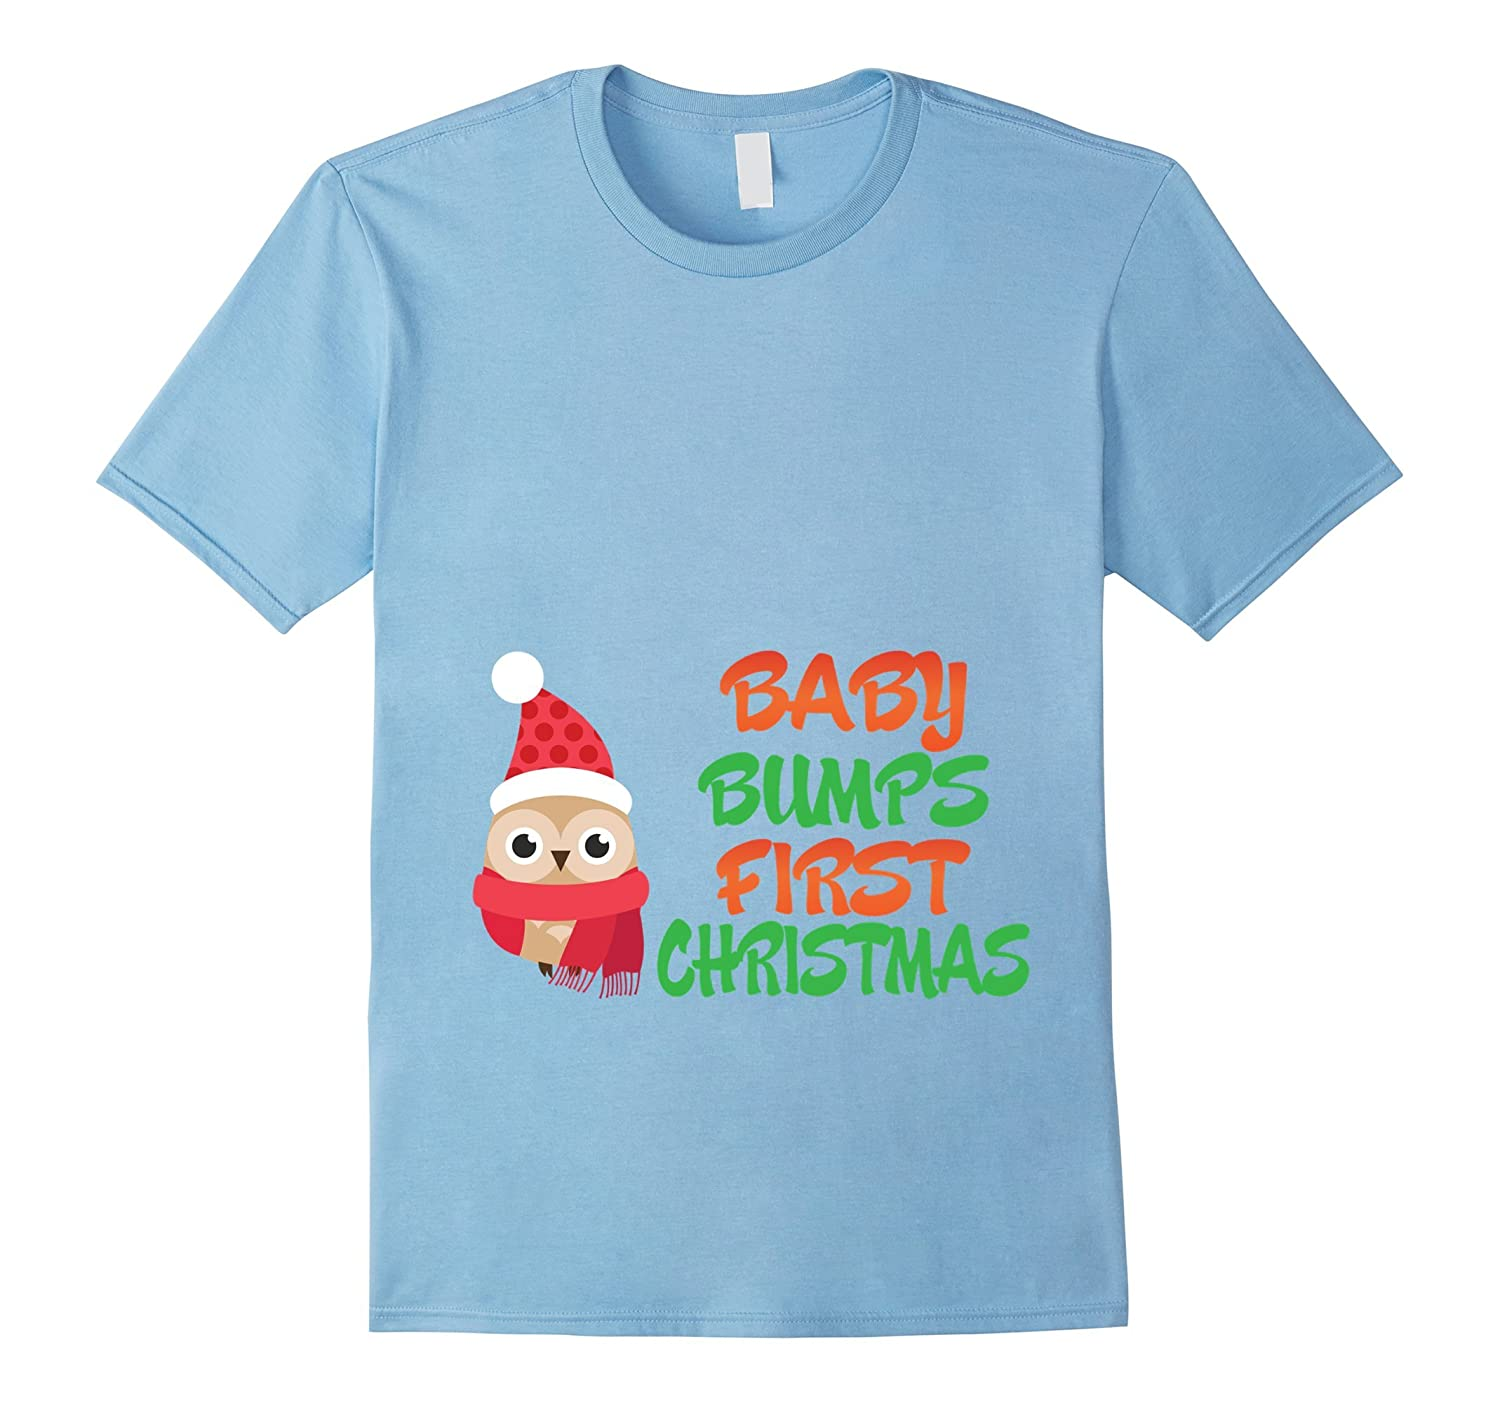 e660d44a15122 Baby Bumps First Christmas Funny Pregnant Maternity T-Shirt-RT ...